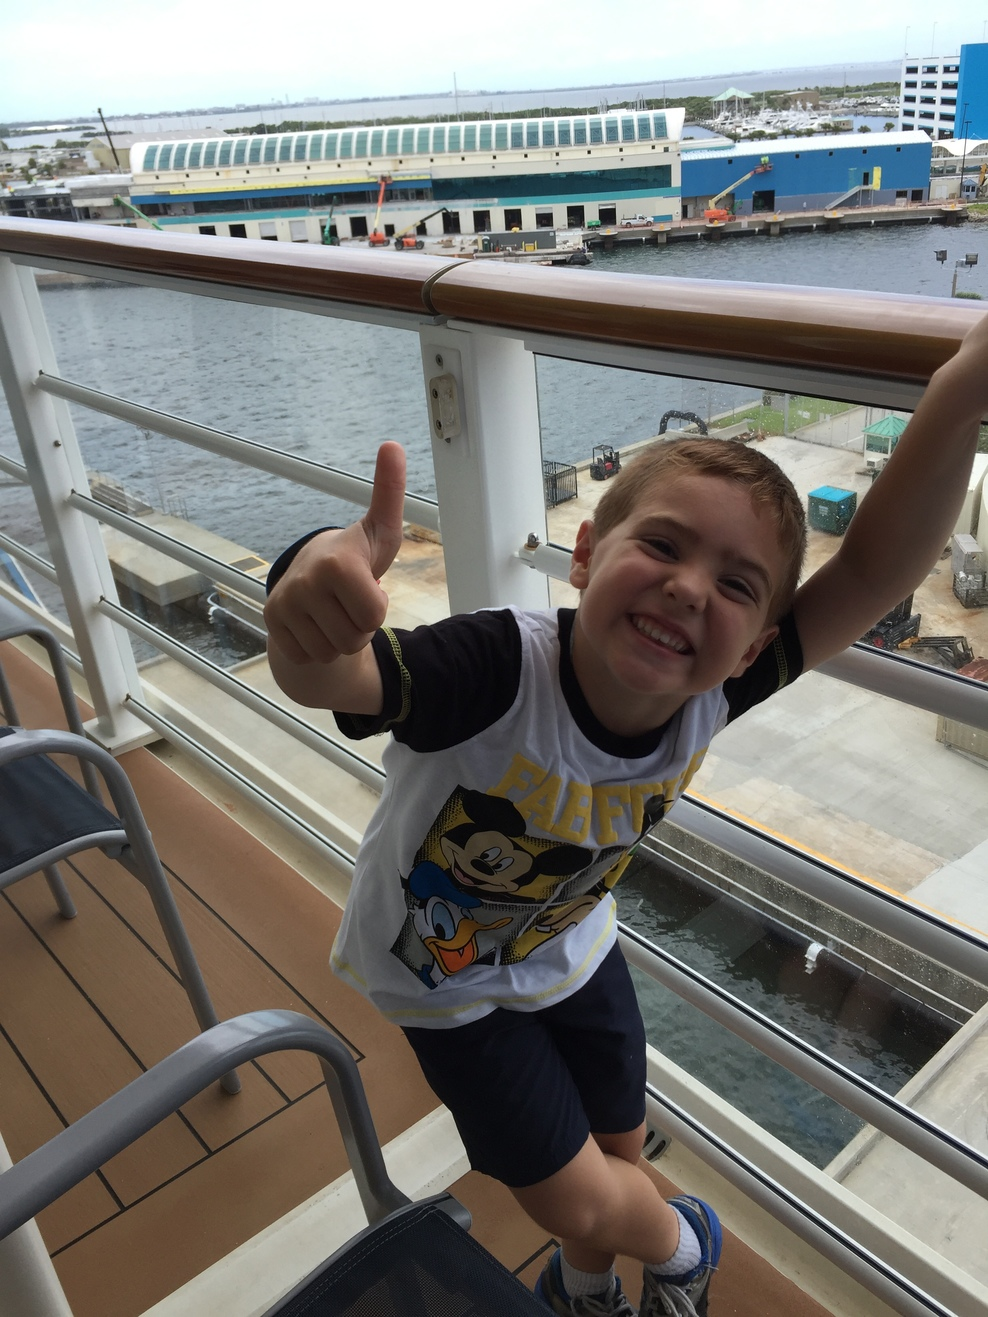 Arrival on Disney Magic for surprise birthday  first cruise